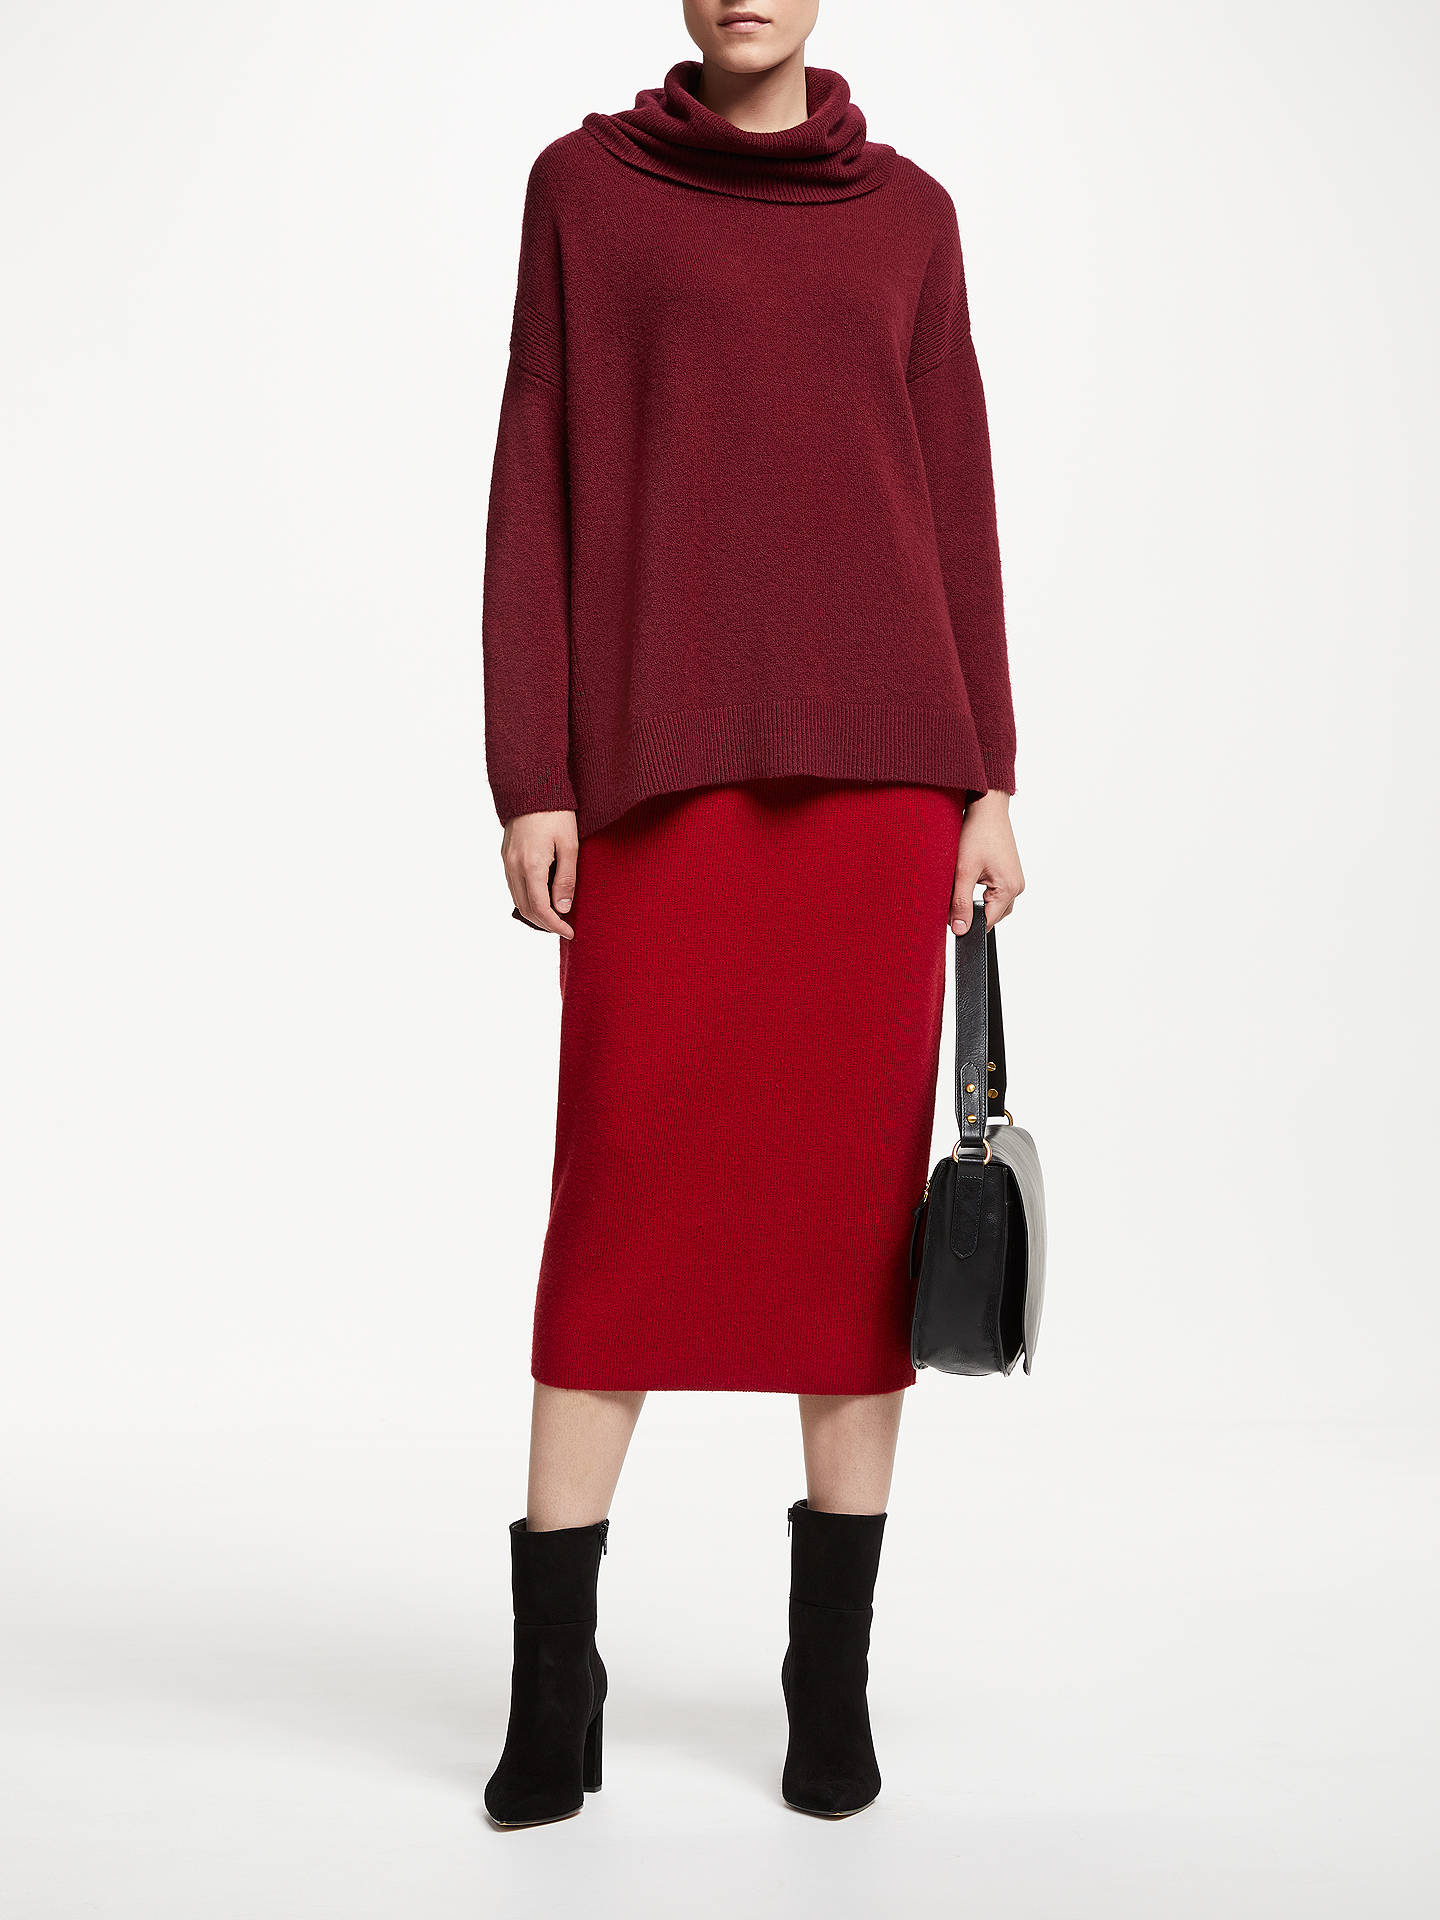 BuyJohn Lewis & Partners Knitted Pencil Skirt, Rust Red, 8 Online at johnlewis.com